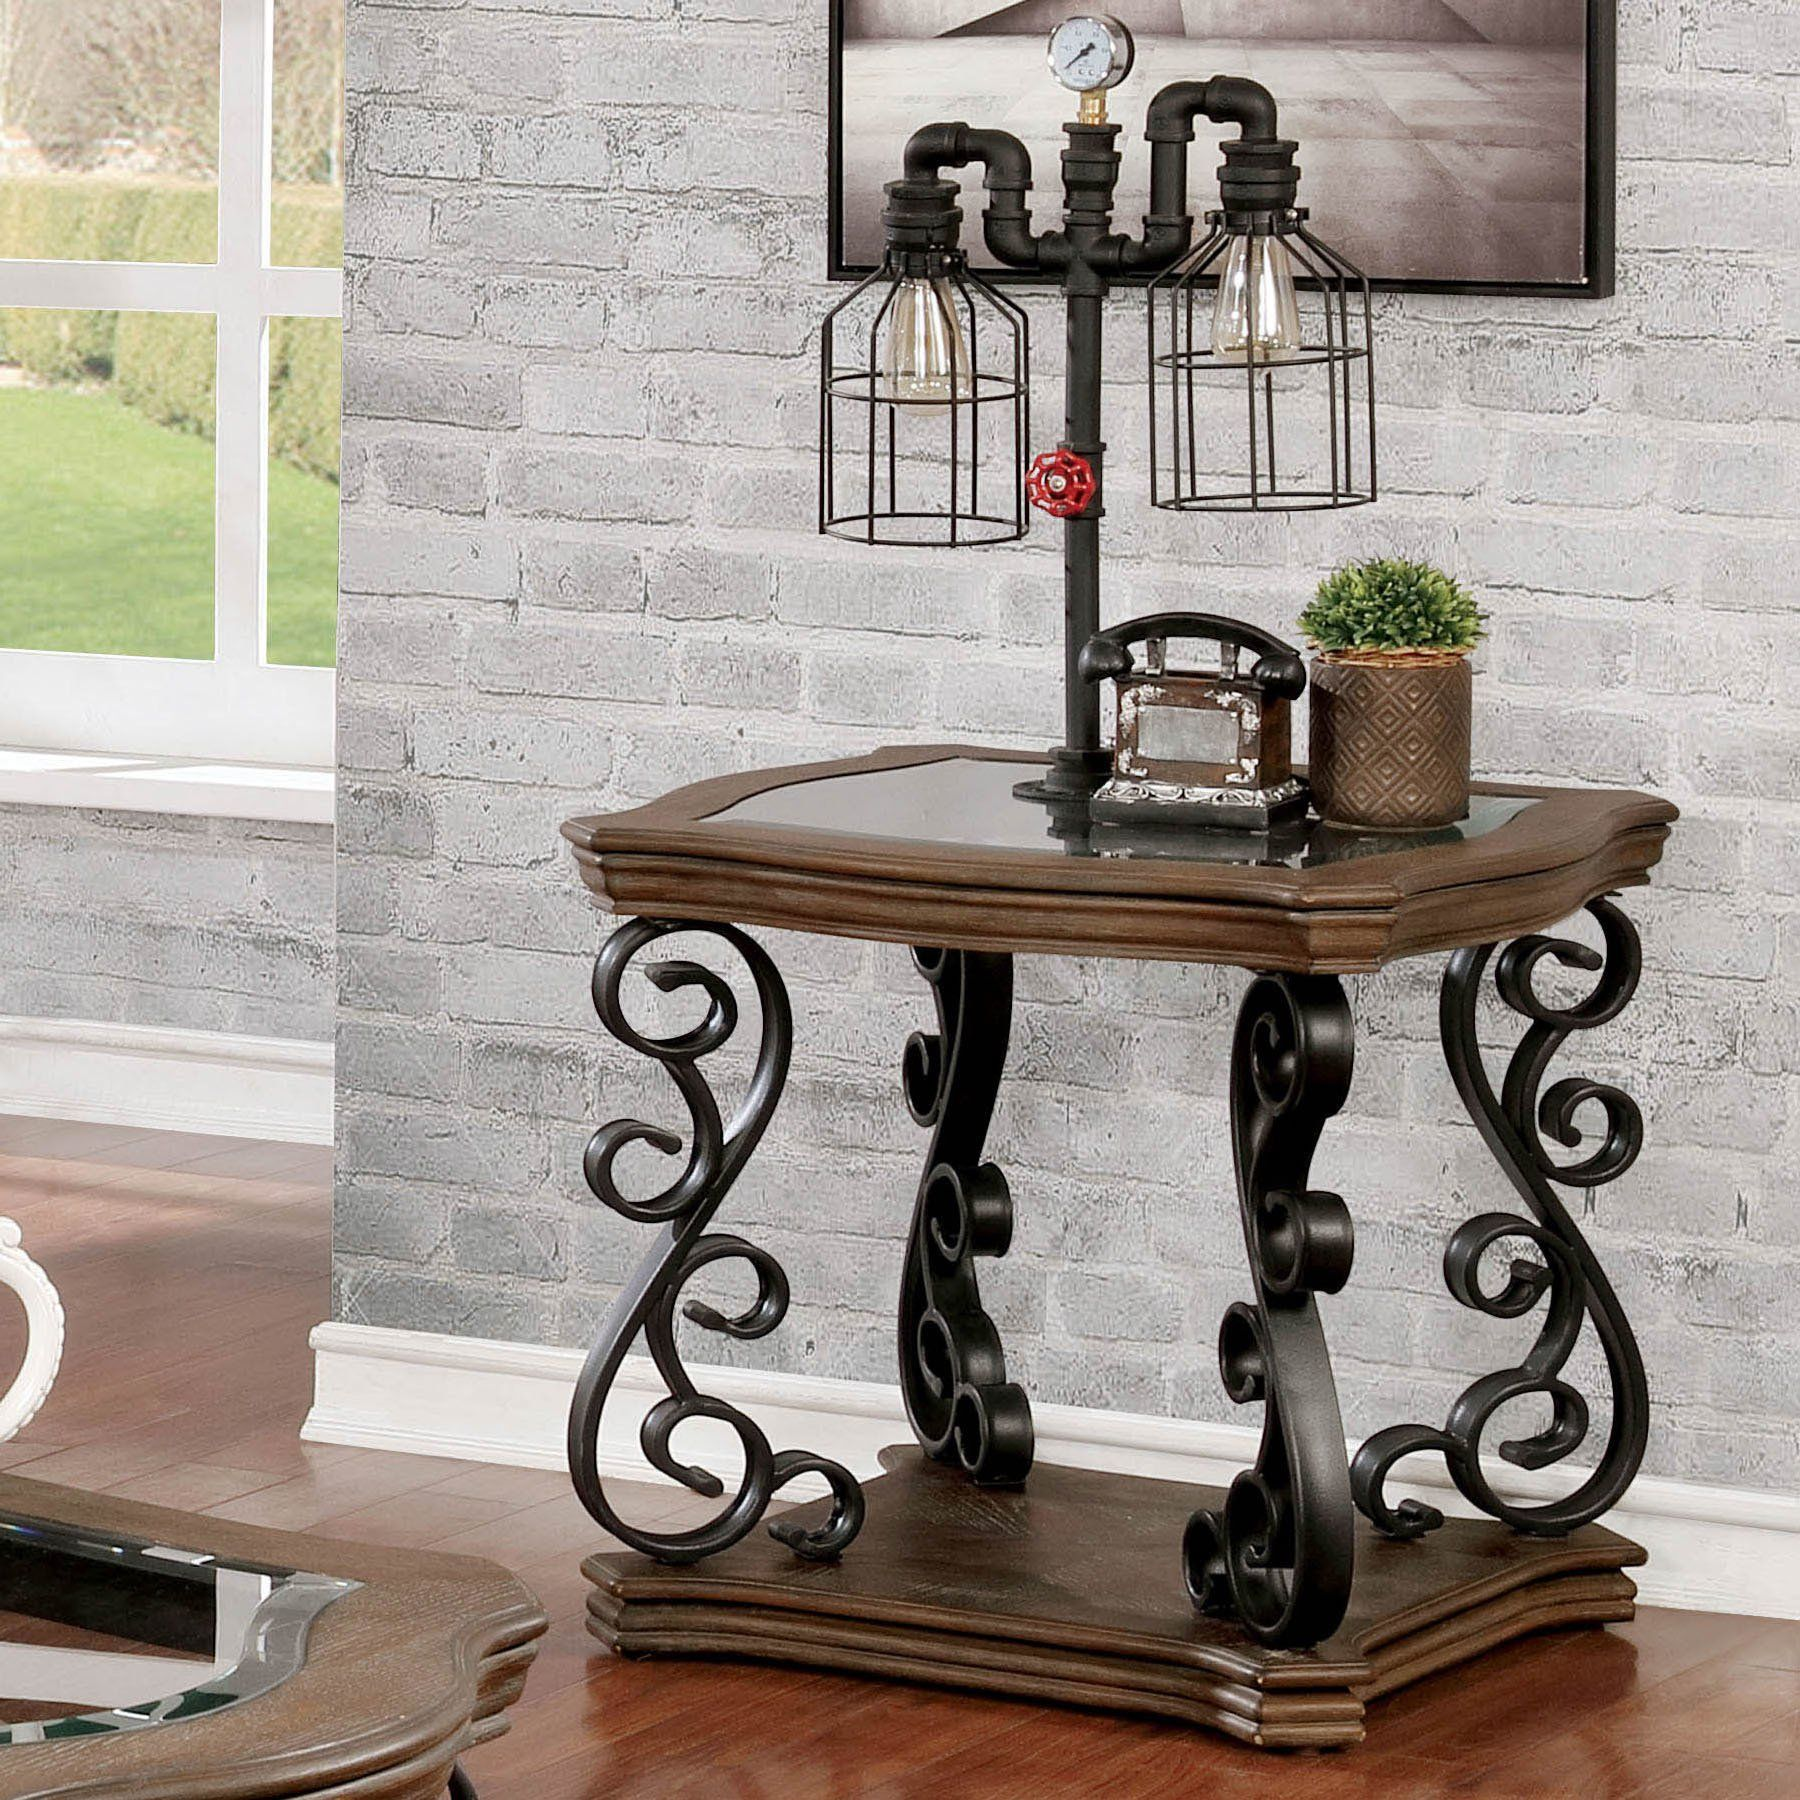 Incredible Mariano Traditional Rustic Natural Tone Glass Top End Table Machost Co Dining Chair Design Ideas Machostcouk